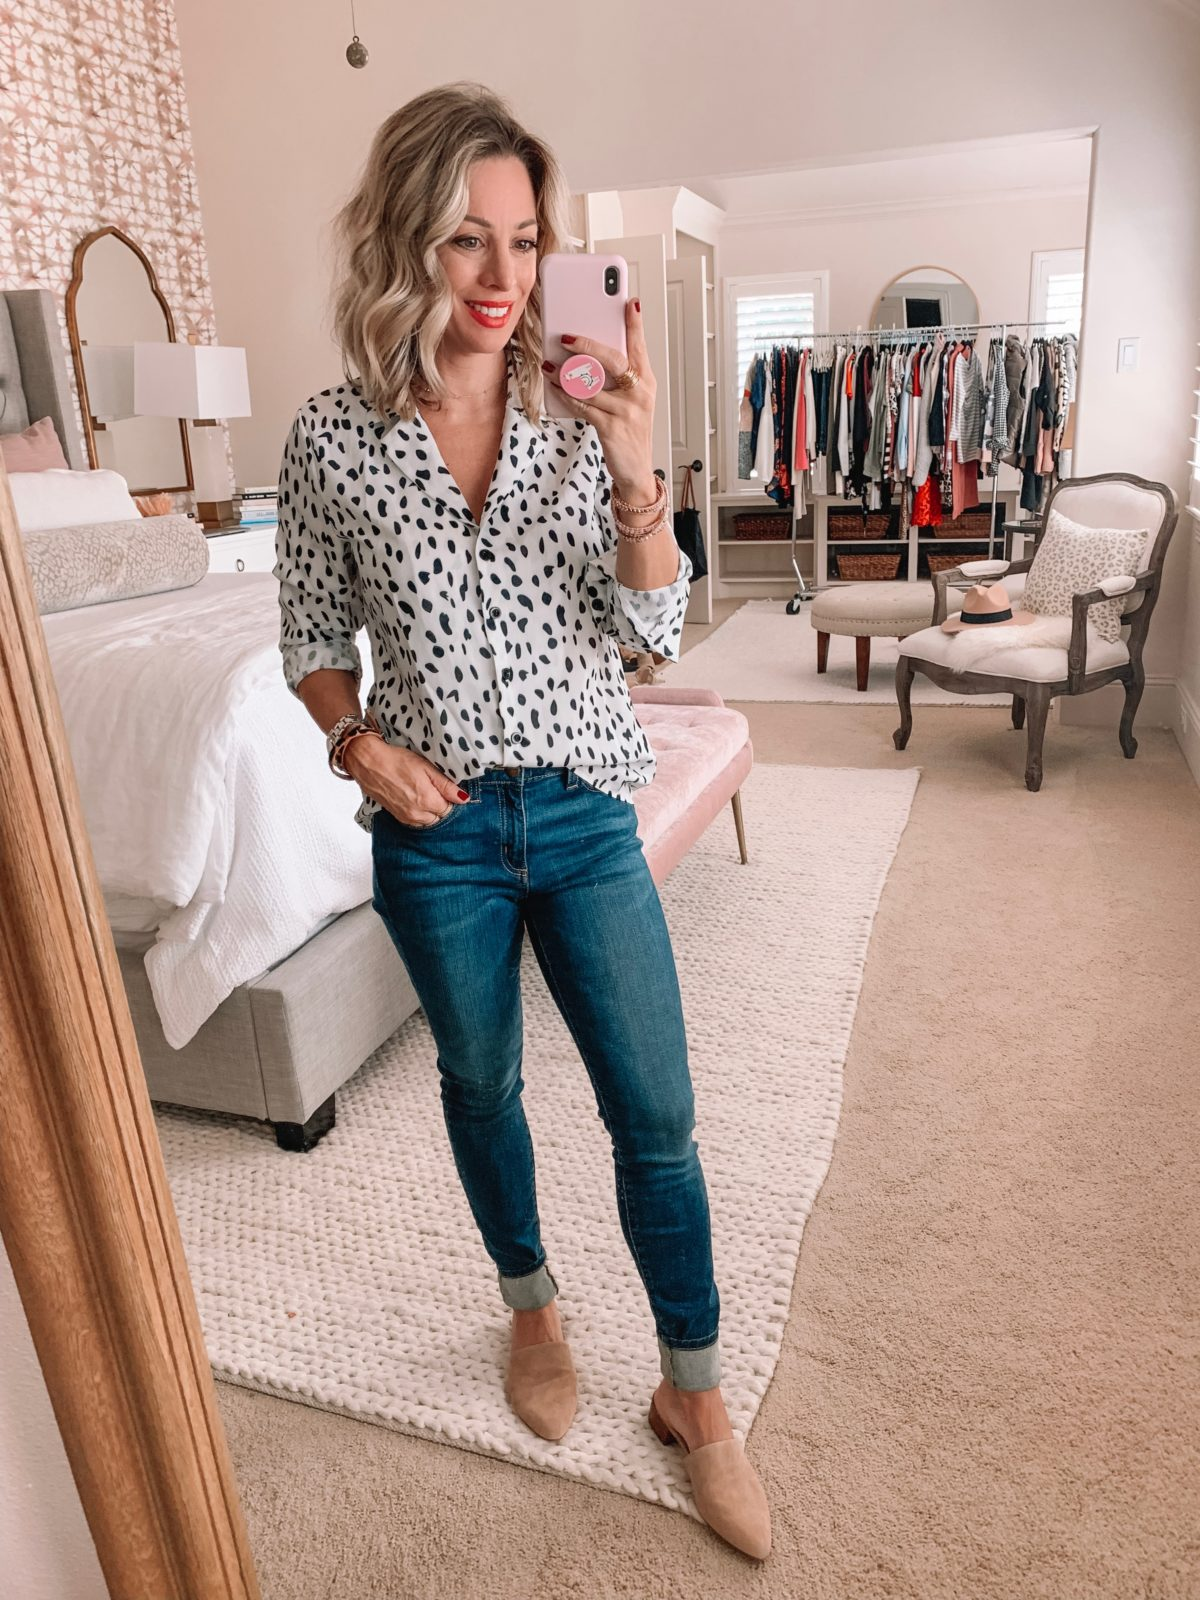 Amazon Prime Fashion- Leopard Button Down and Jeans